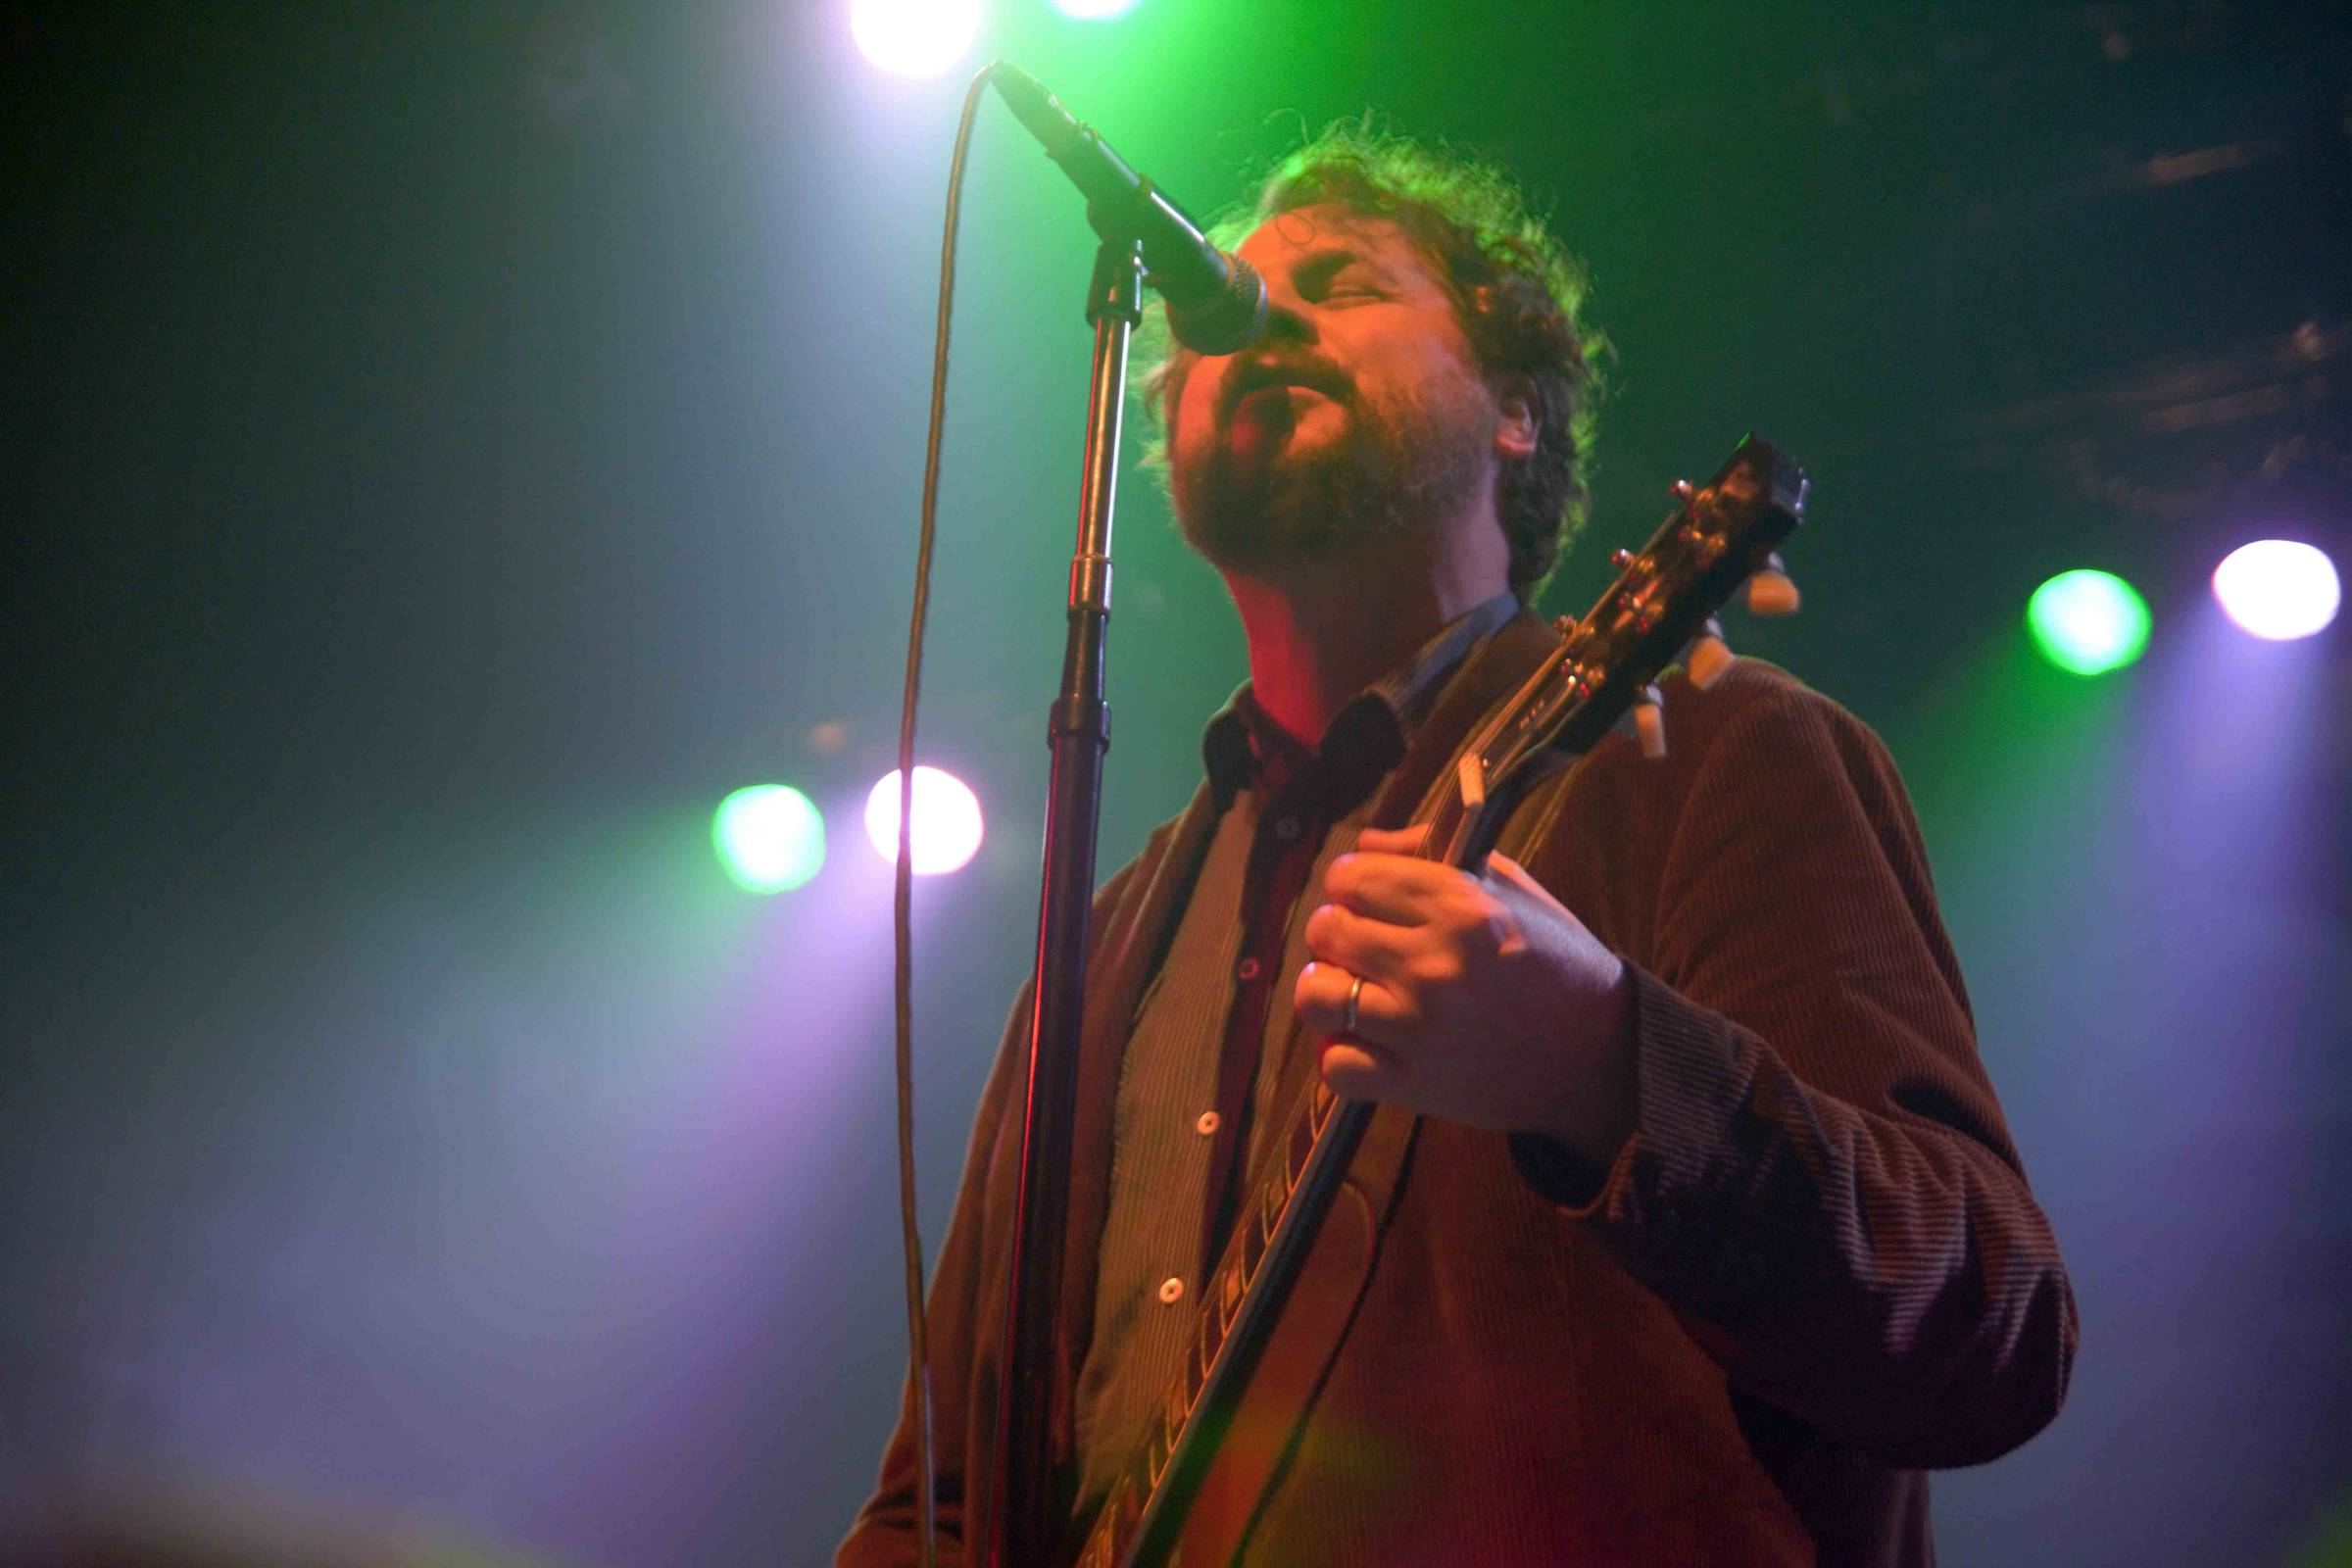 Patterson Hood with the Drive-By Truckers at the Vogue Theatre